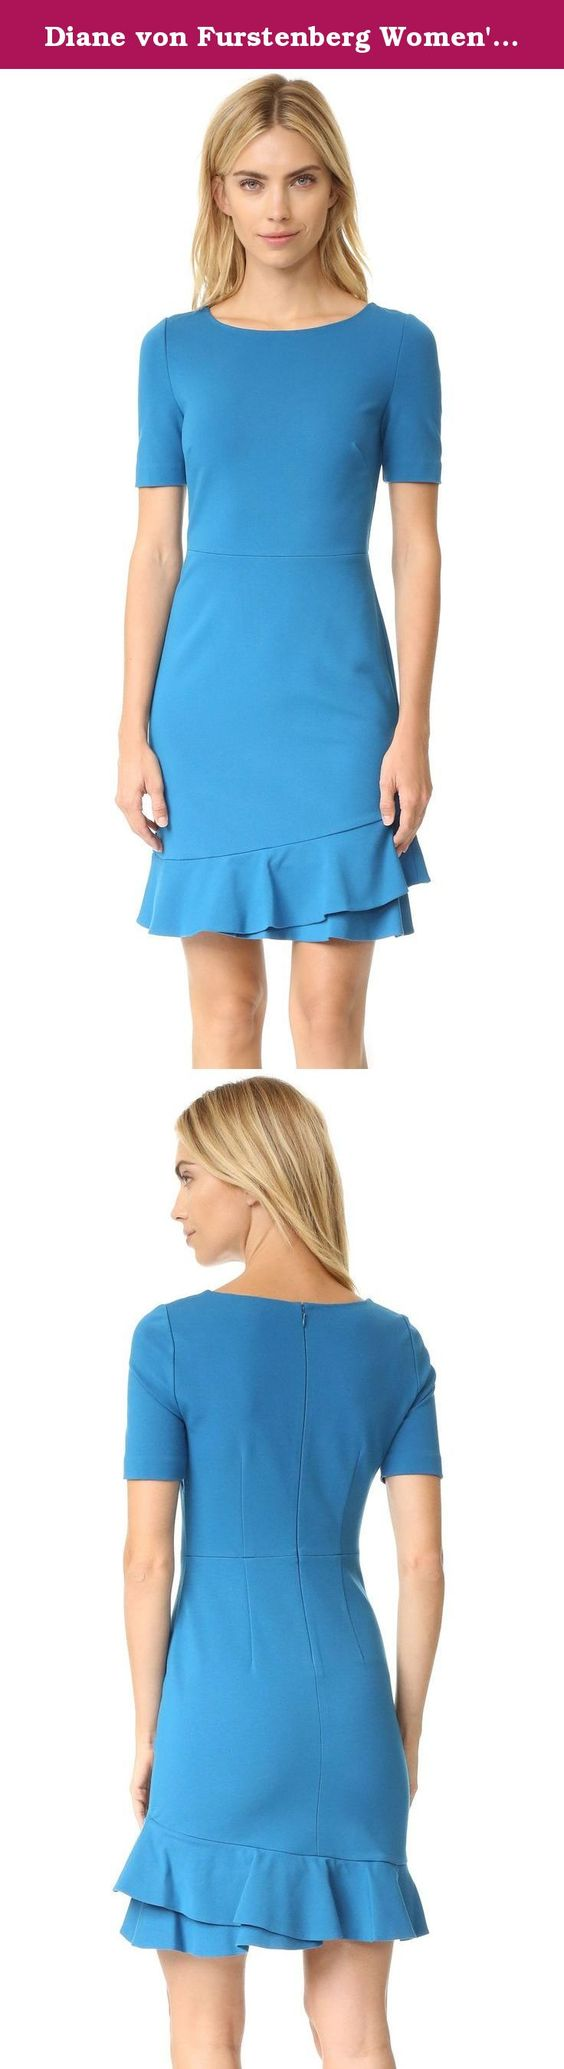 Diane von Furstenberg Women's Serafina Dress, Peacock, 2. Flounced, layered ruffles trim the hem of this formfitting Diane von Furstenberg dress. The versatile piece is cut from smooth ponte jersey and styled with a wide neckline. Short sleeves. Hidden back zip. Unlined.